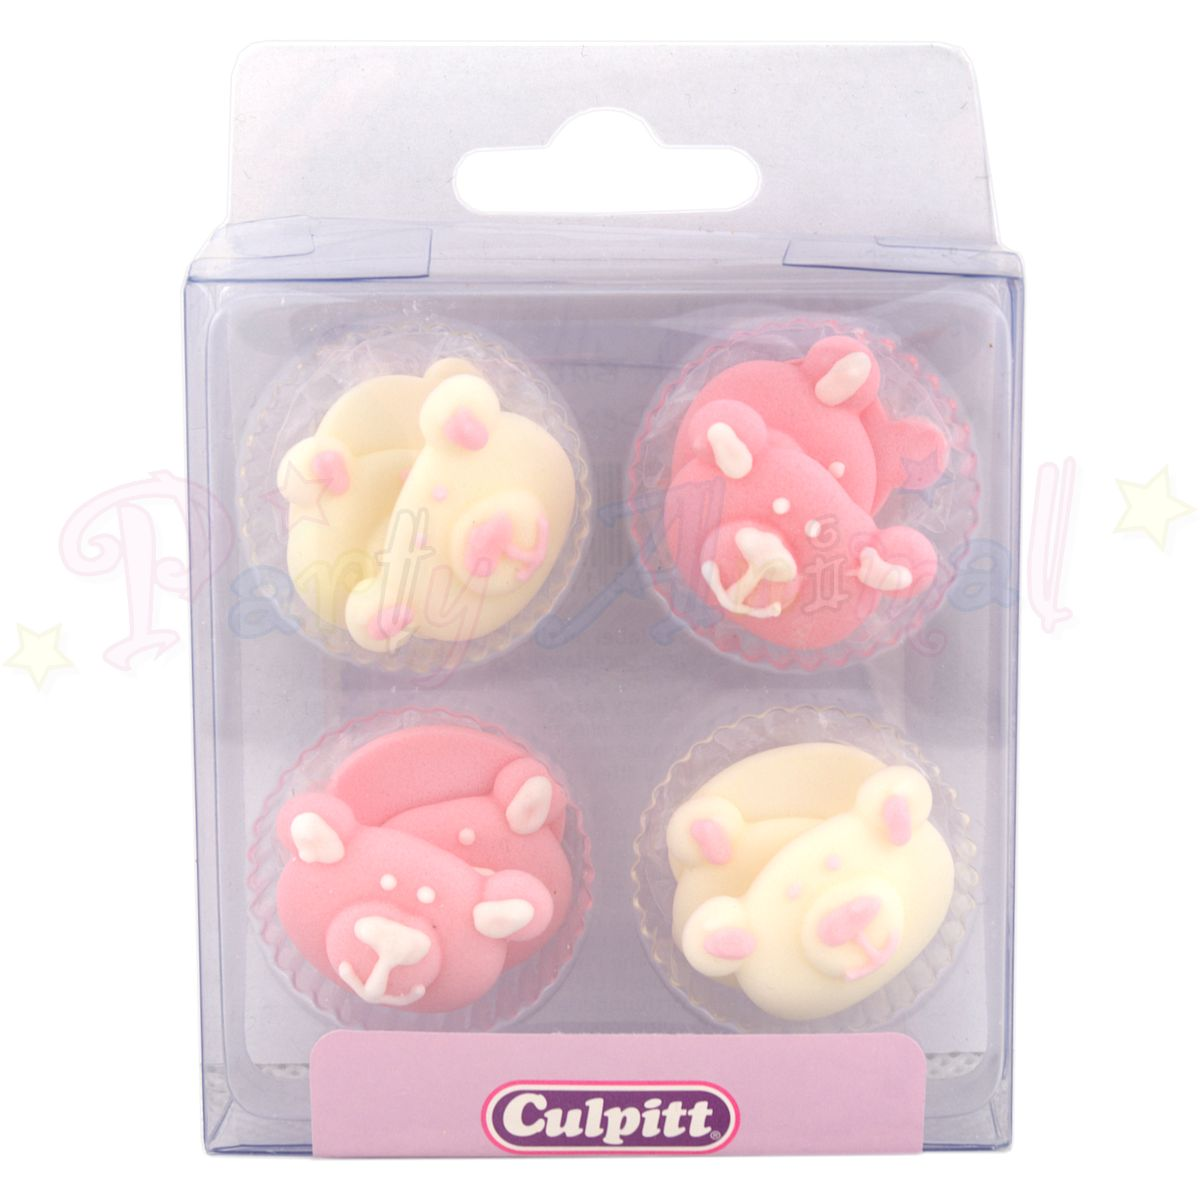 Culpitt Edible Piped Decorations PINK BEAR Set of 12 Cupcake Toppers